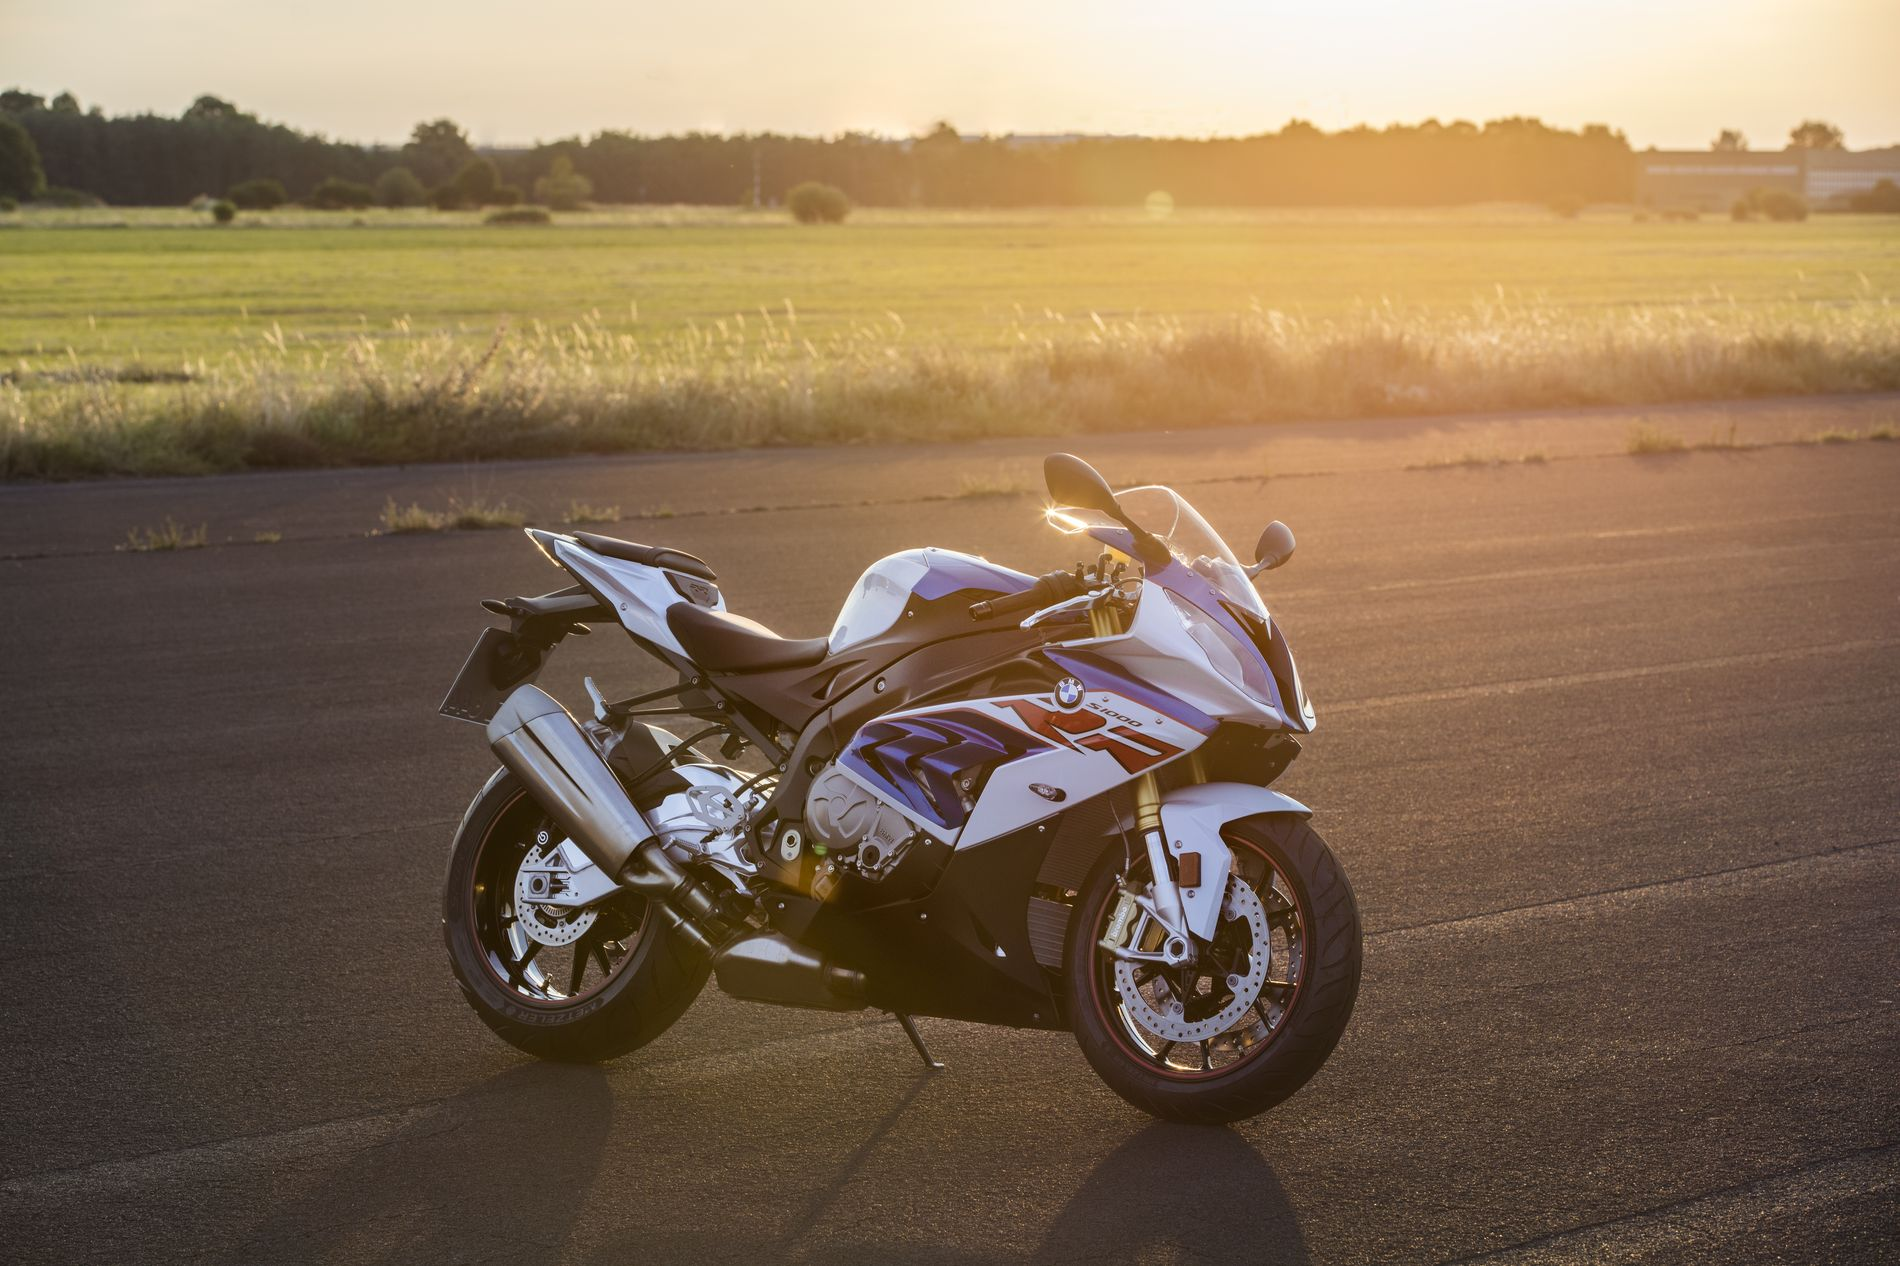 moto bmw nouvelle bmw s1000rr moto bmw. Black Bedroom Furniture Sets. Home Design Ideas